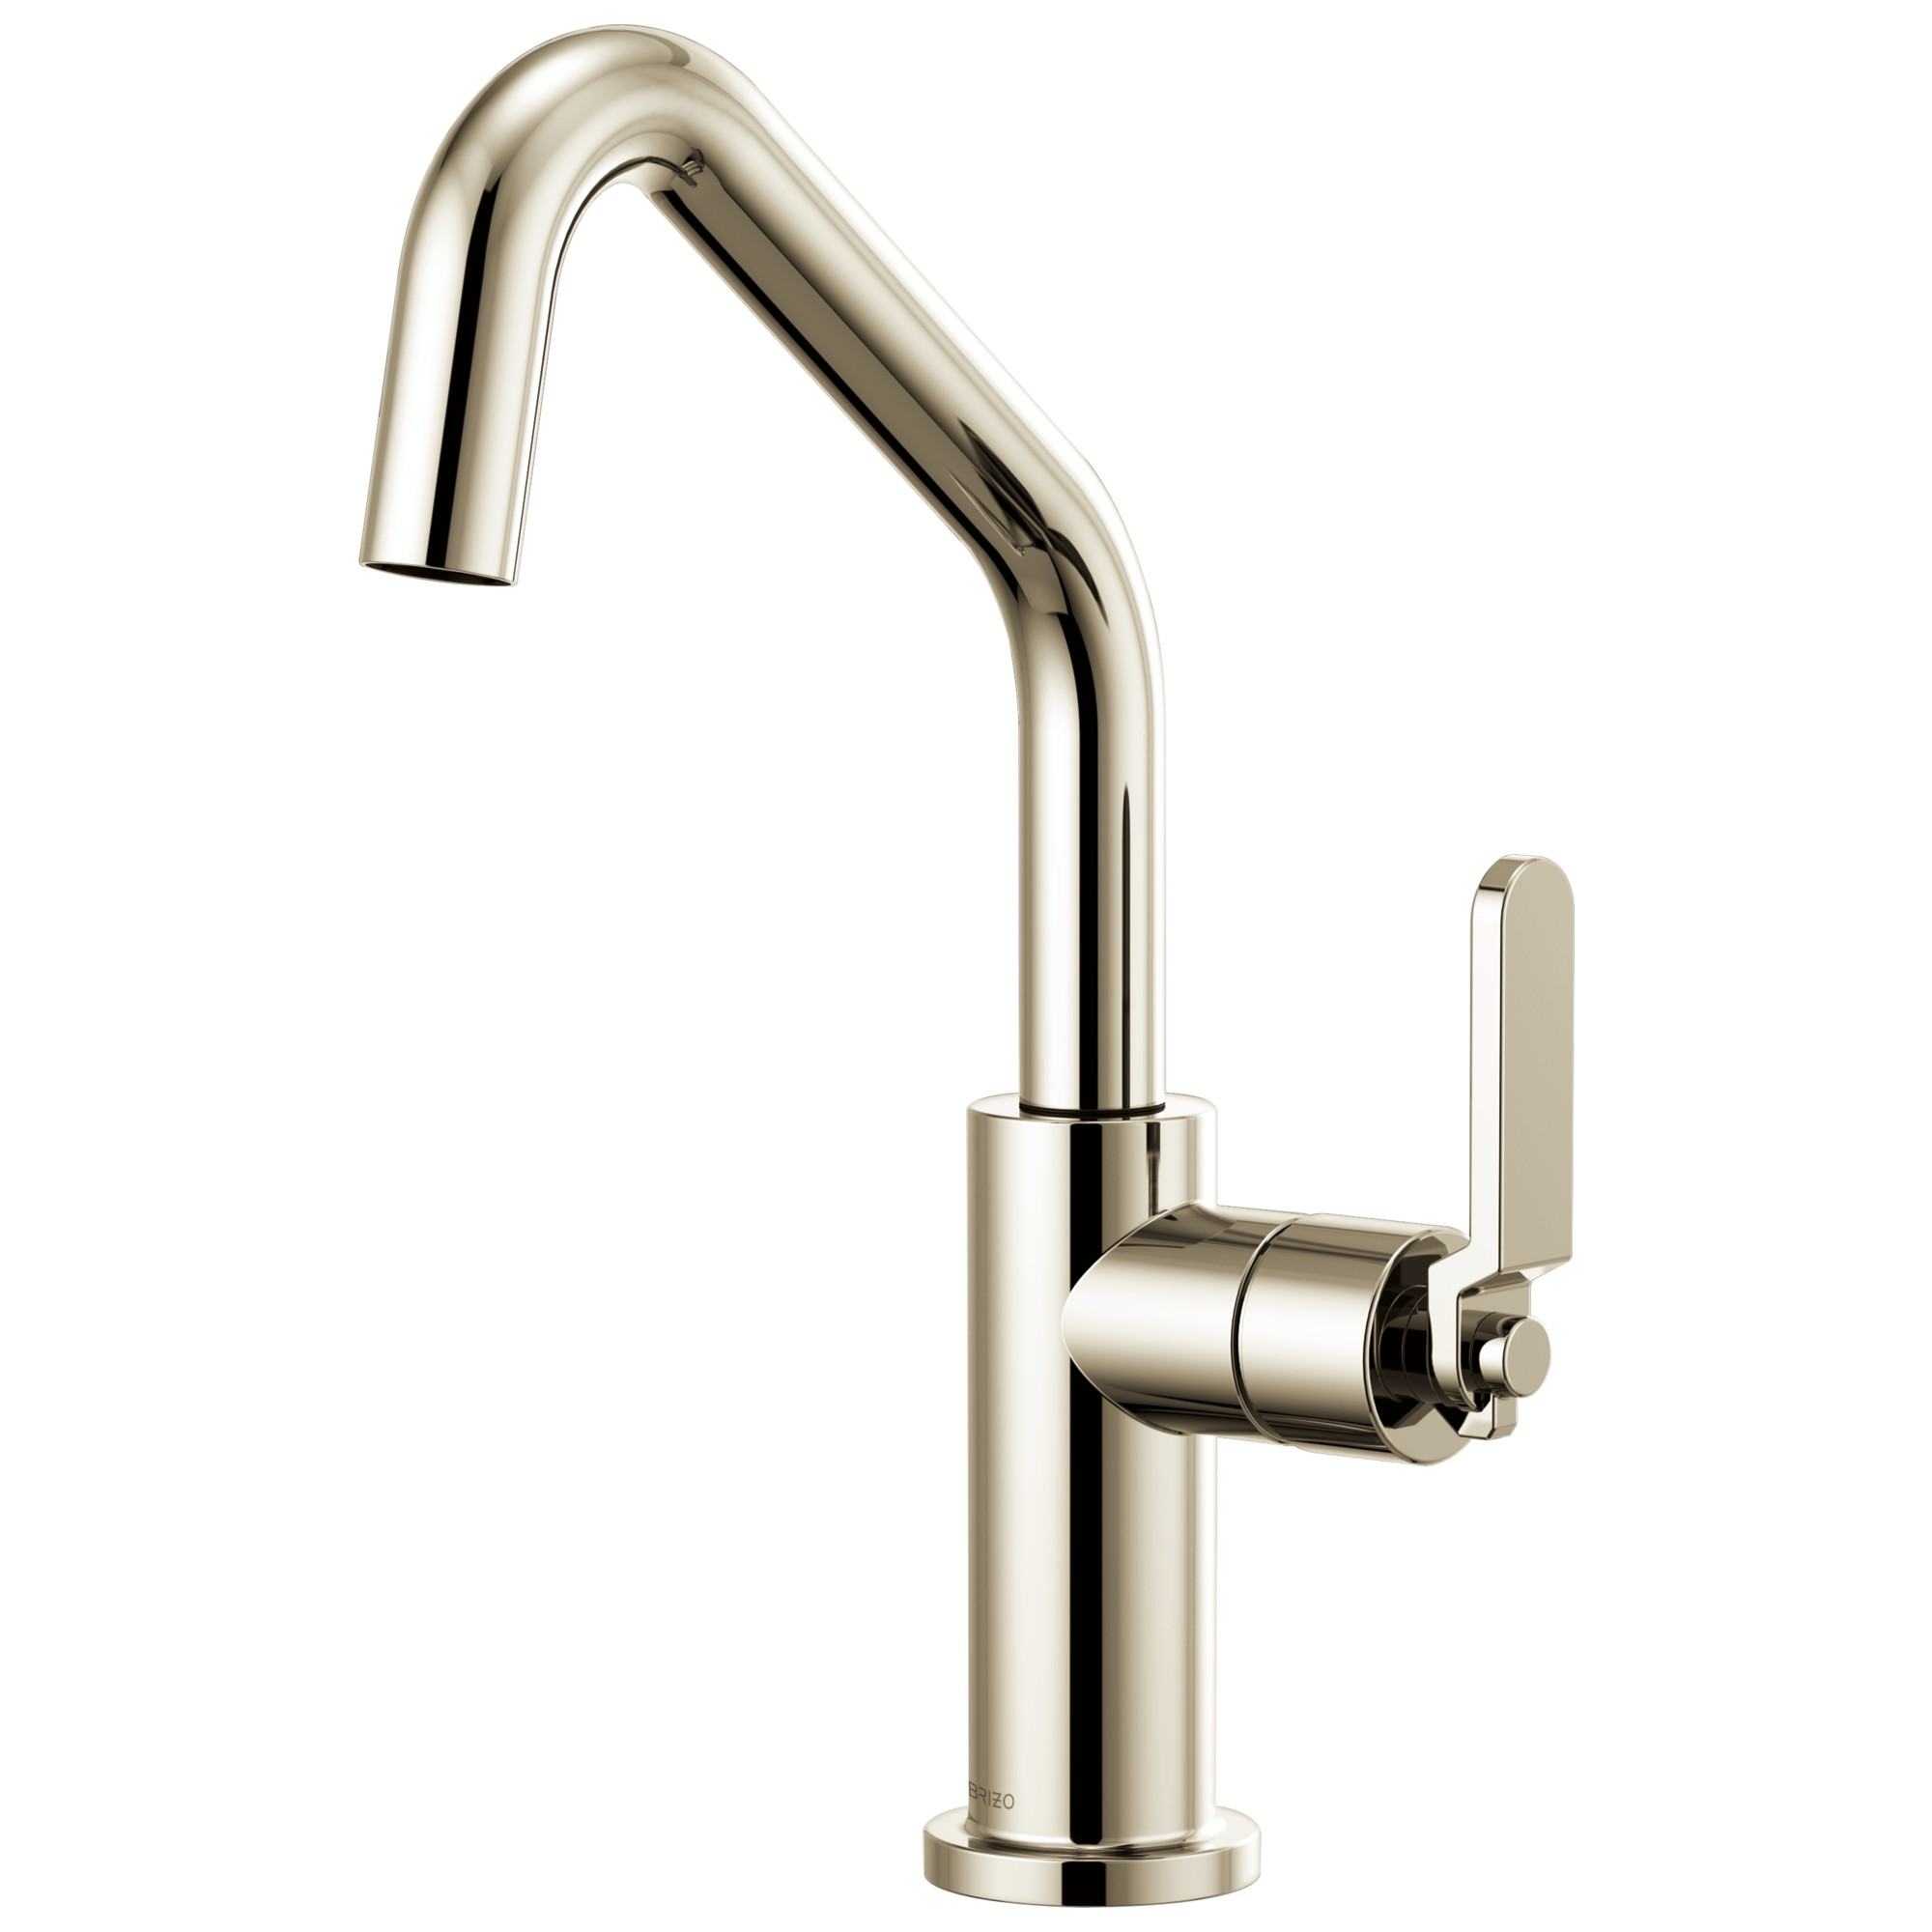 Brizo 61064LF-PN Litze Bar Faucet with Angled Spout and Industrial Handle - Polished Nickel